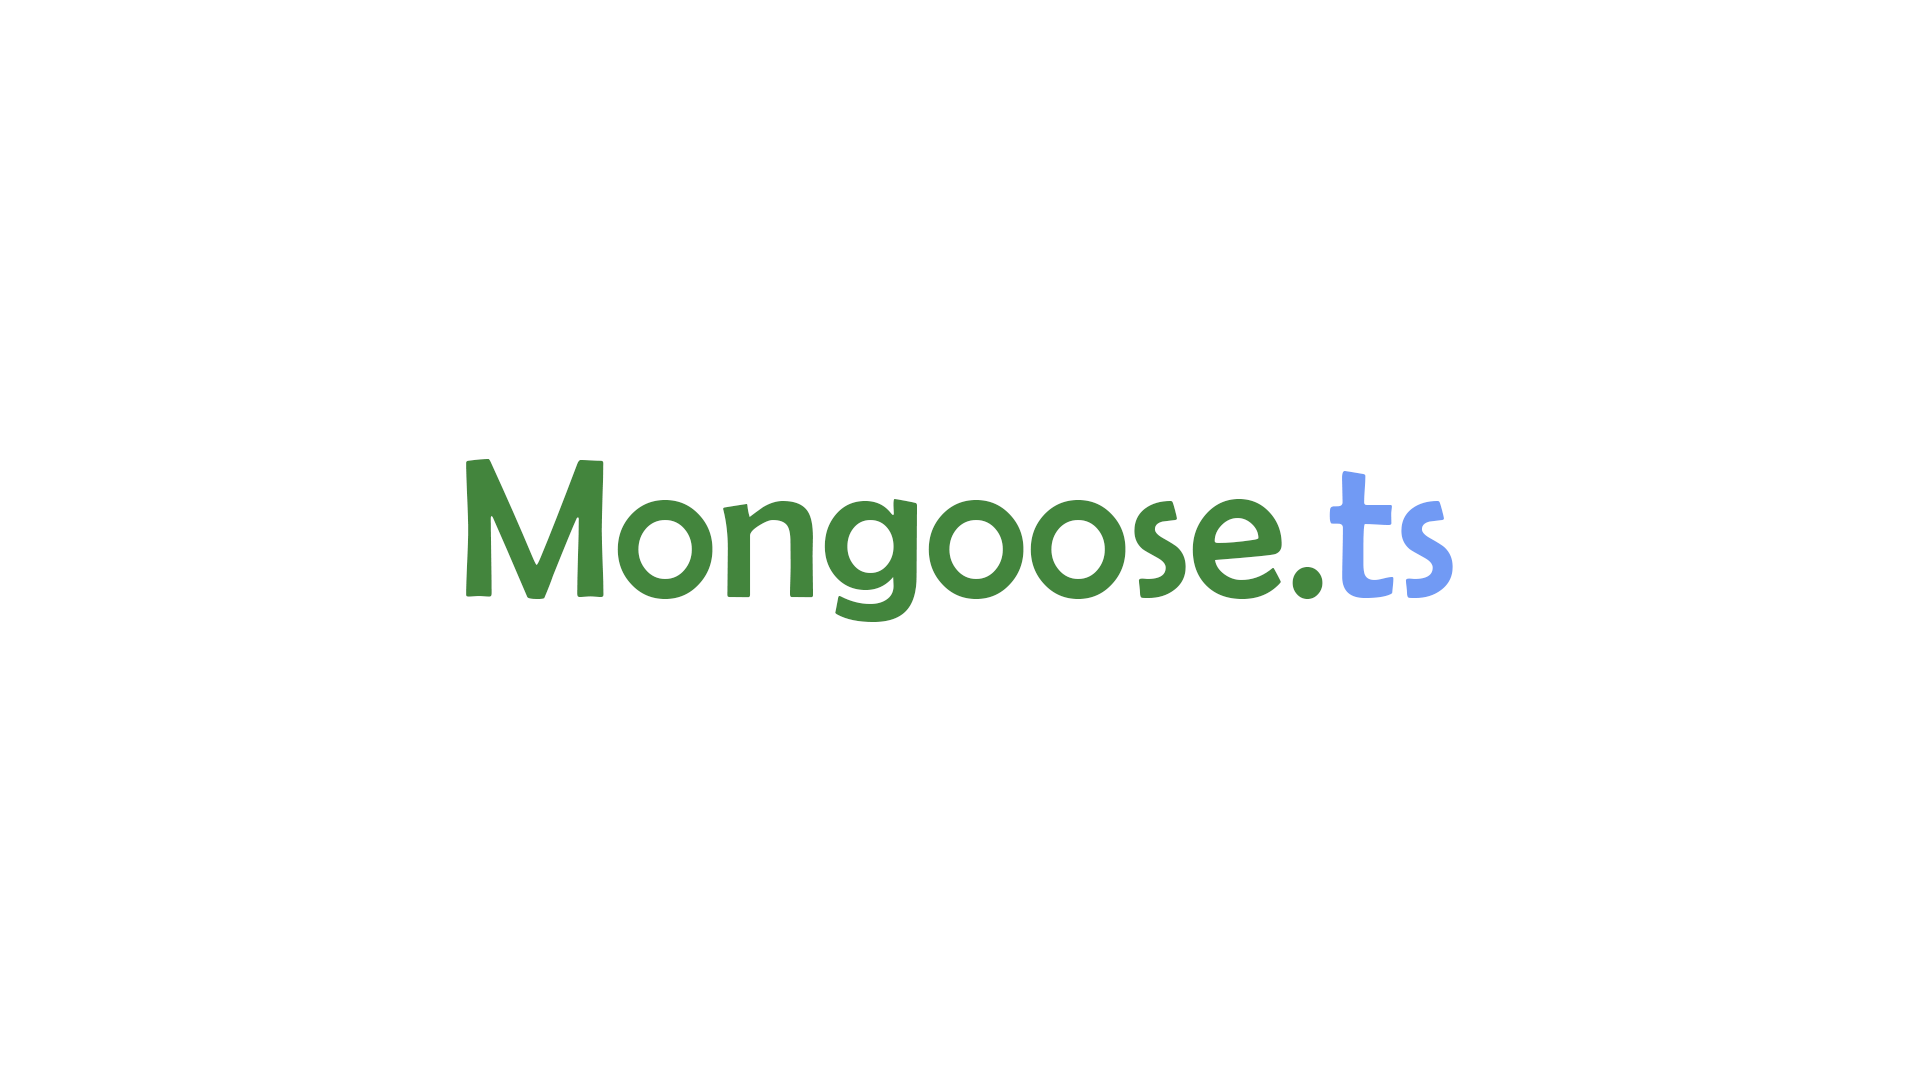 Use mongoose with typescript